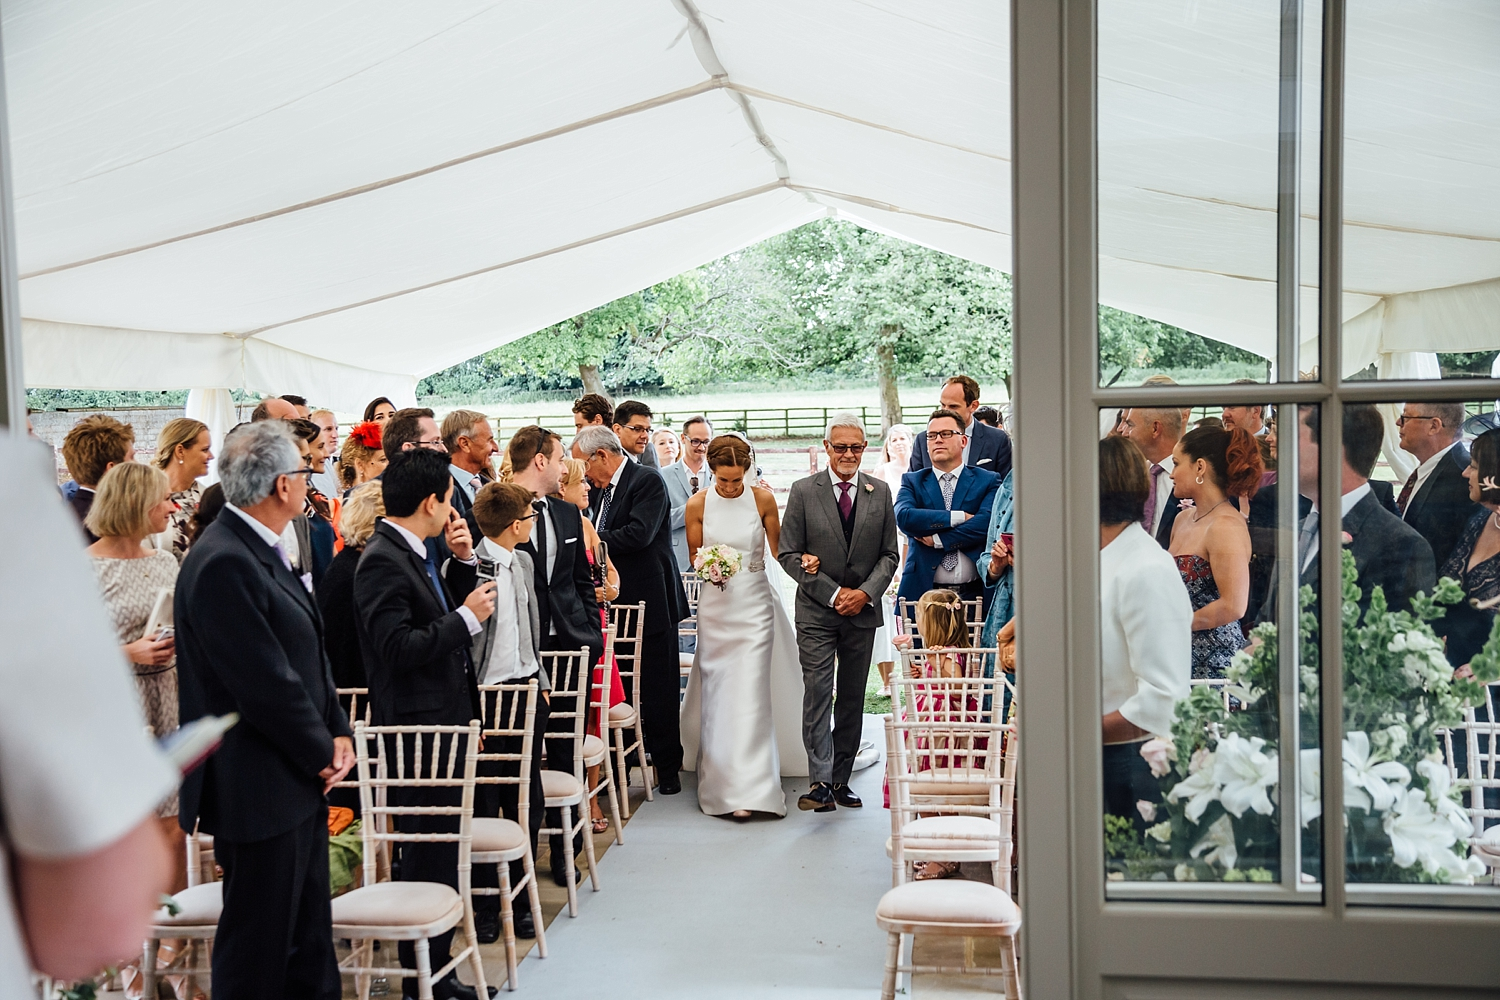 alexvictor-blog-natural-fun-relaxed-documentary-charlotte-jopling-wedding-photography-northamptonshire-home-garden-country-summer-26.jpg